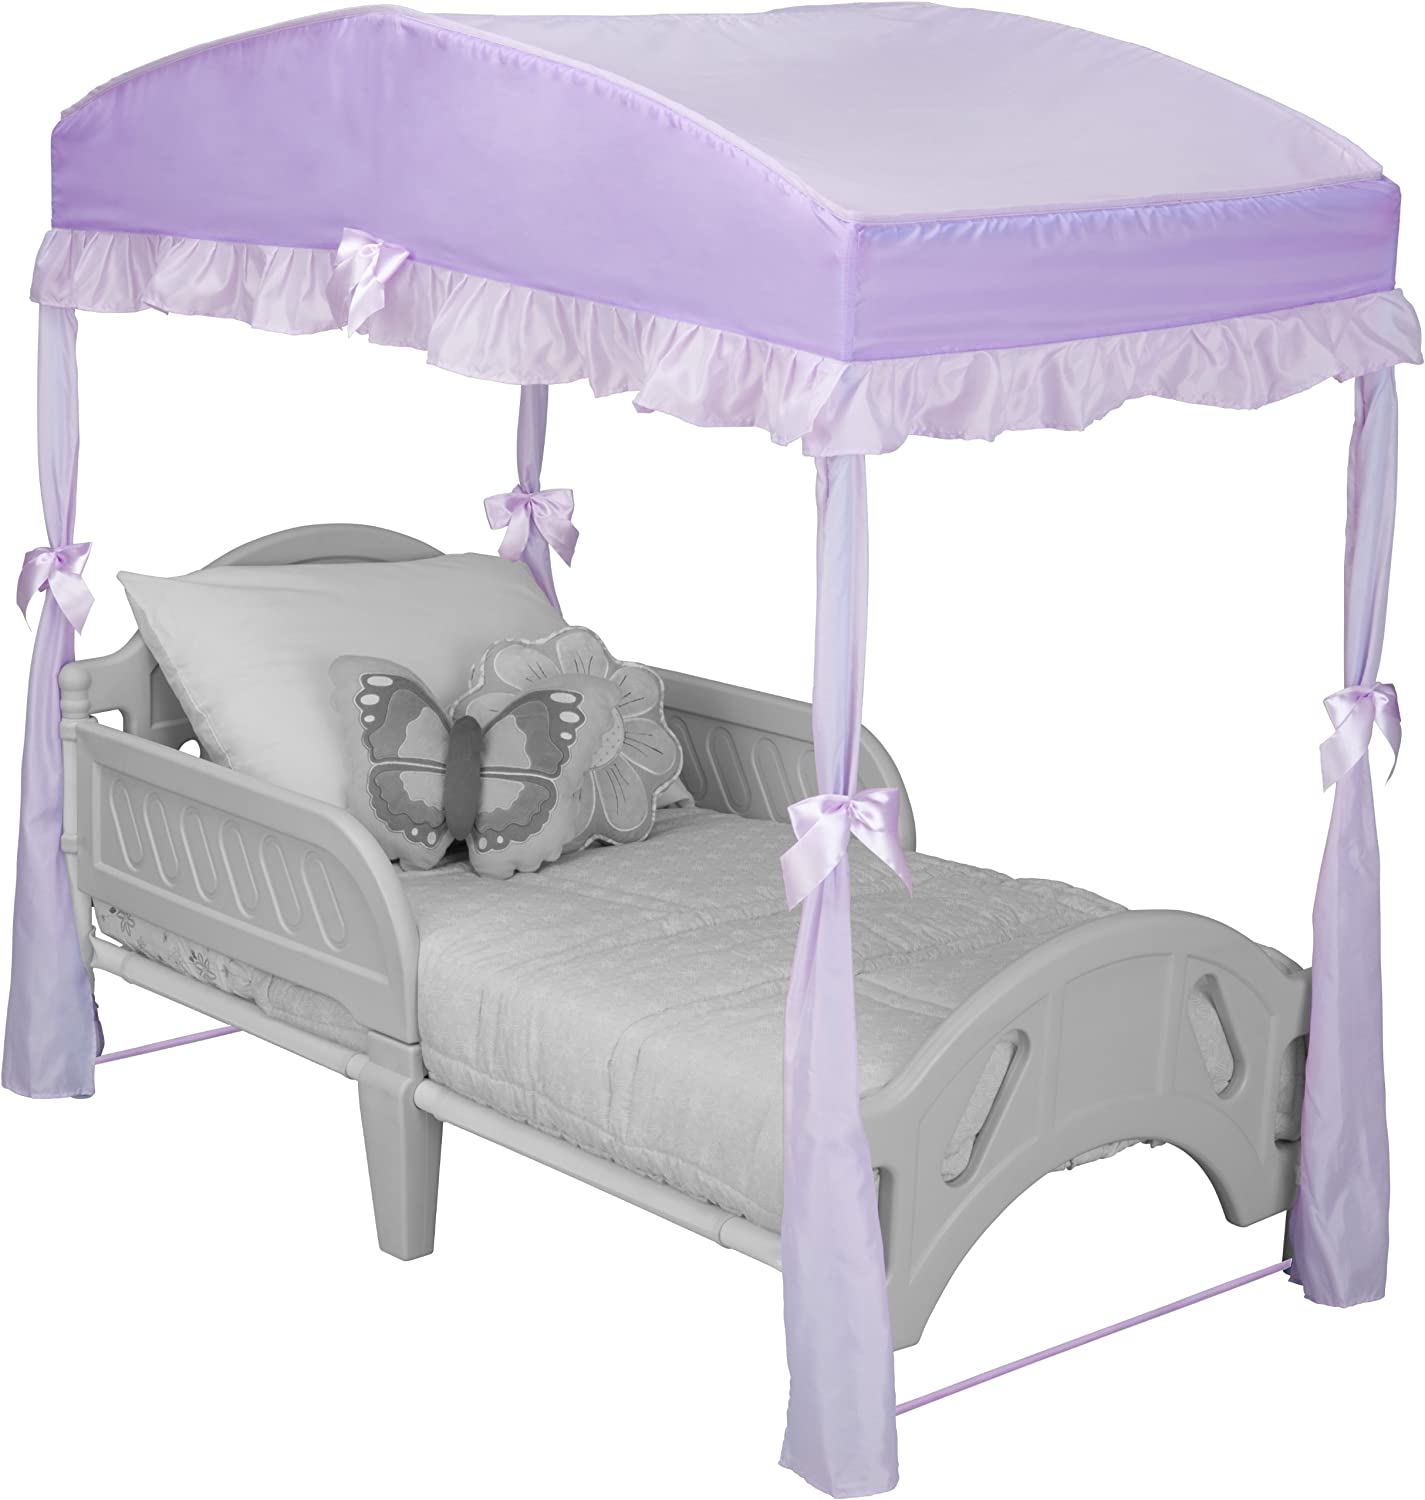 - Delta Girls Toddler Bed Canopy, Purple: Amazon.co.uk: Baby